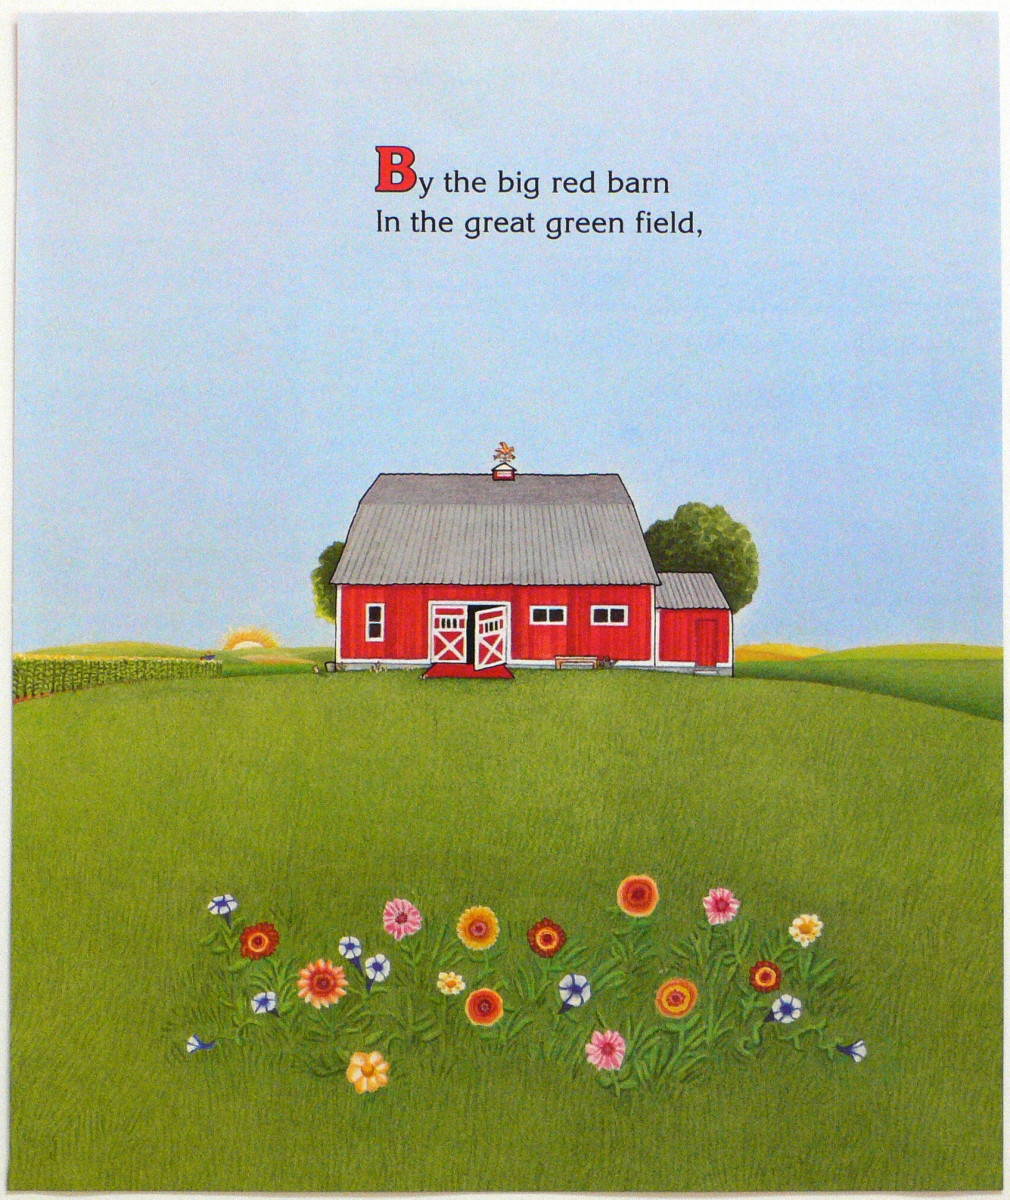 By Felicia Bond, Illustrator; Margaret Wise Brown, Writer (Supplied by Felicia Bond, illustrator) [CC BY-SA 3.0 (http://creativecommons.org/licenses/by-sa/3.0)], via Wikimedia Commons